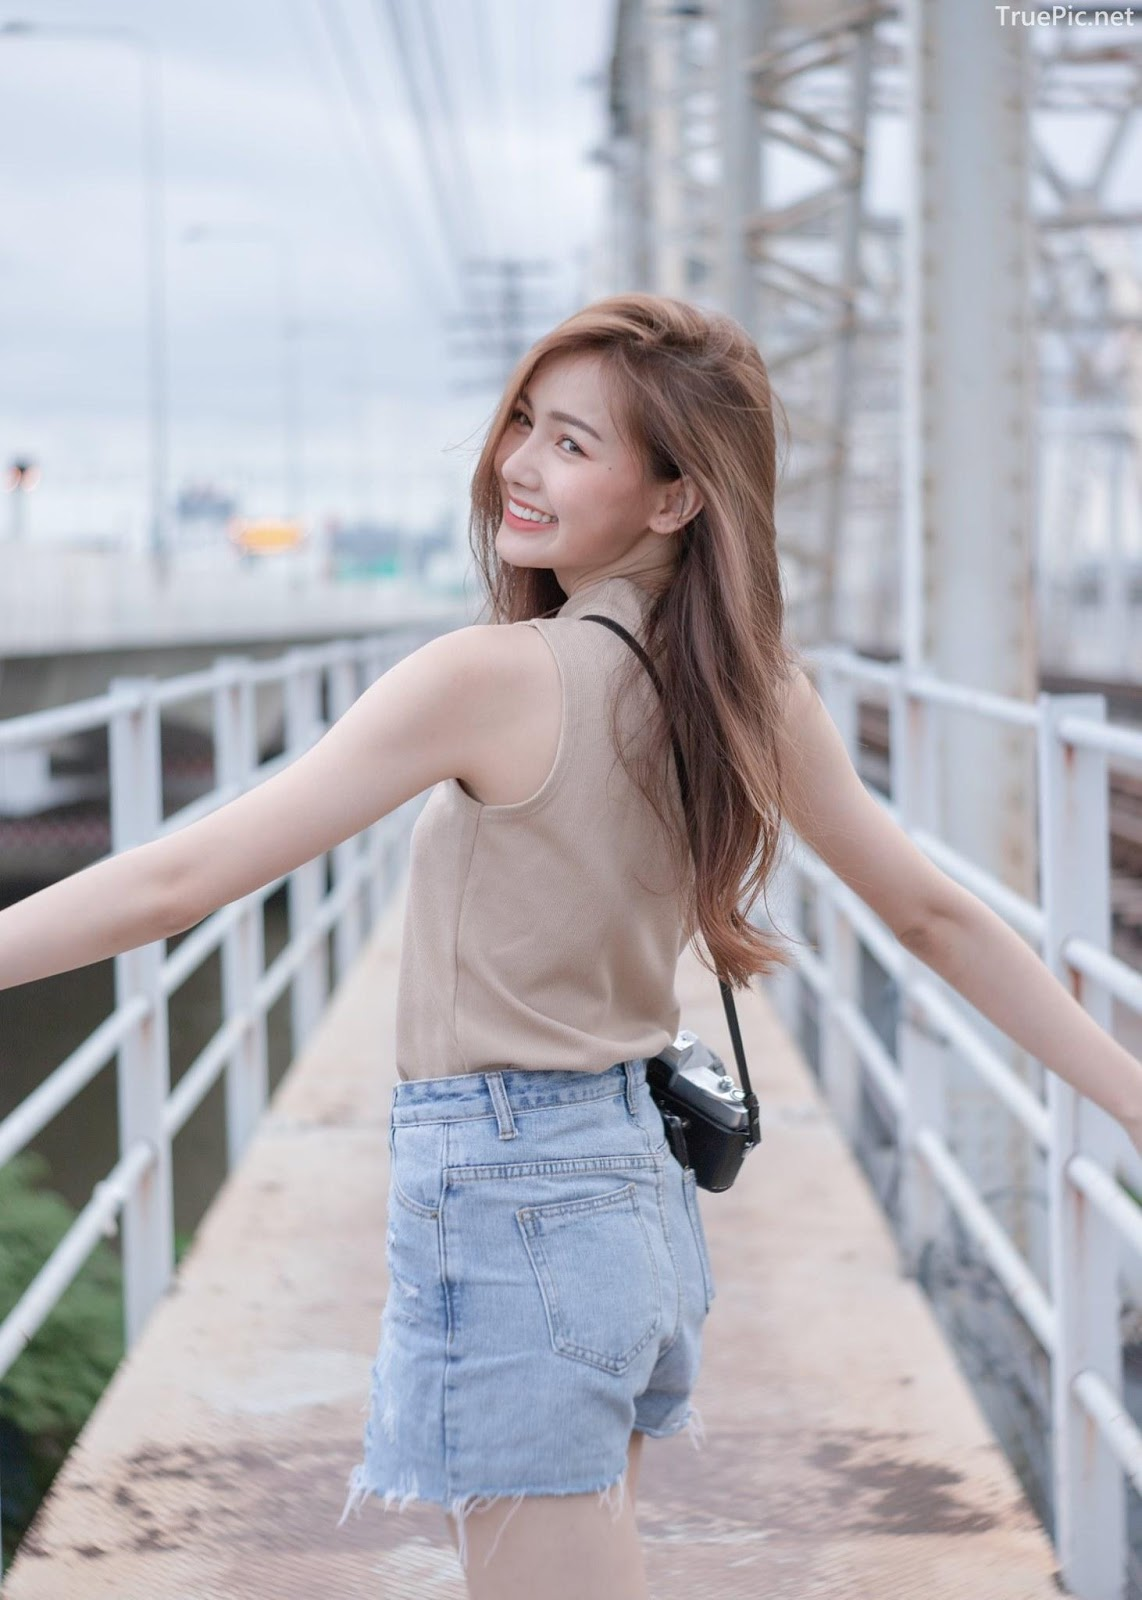 Thailand beautiful model - Pla Kewalin Udomaksorn - A beautiful morning with a cute girl - Picture 10